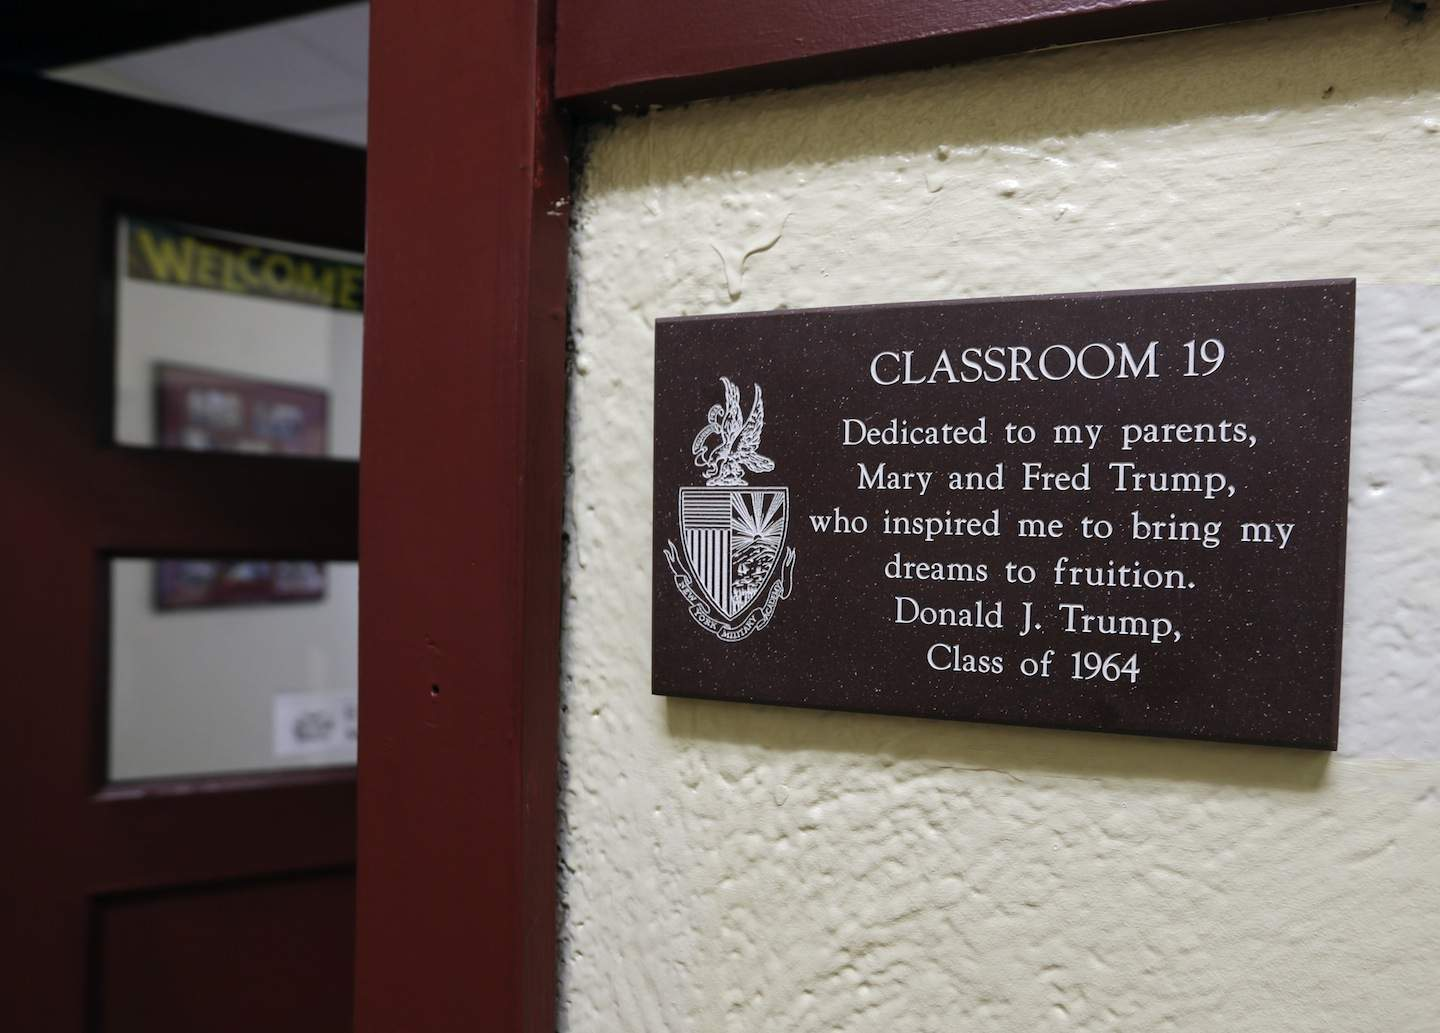 In this Thursday, Sept. 8, 2016 photo, a plaque with a dedication to Donald Trump's parents, Mary and Fred Trump, hangs outside a classroom at the New York Military Academy in Cornwall-on-Hudson, N.Y. While Republican presidential nominee, Trump, talks tough about dealing with China, his old military prep school is building bridges to that country. The New York Military Academy began classes this fall with new Chinese backing and a former New York City high school principal originally from China in charge. (AP Photo/Mike Groll)